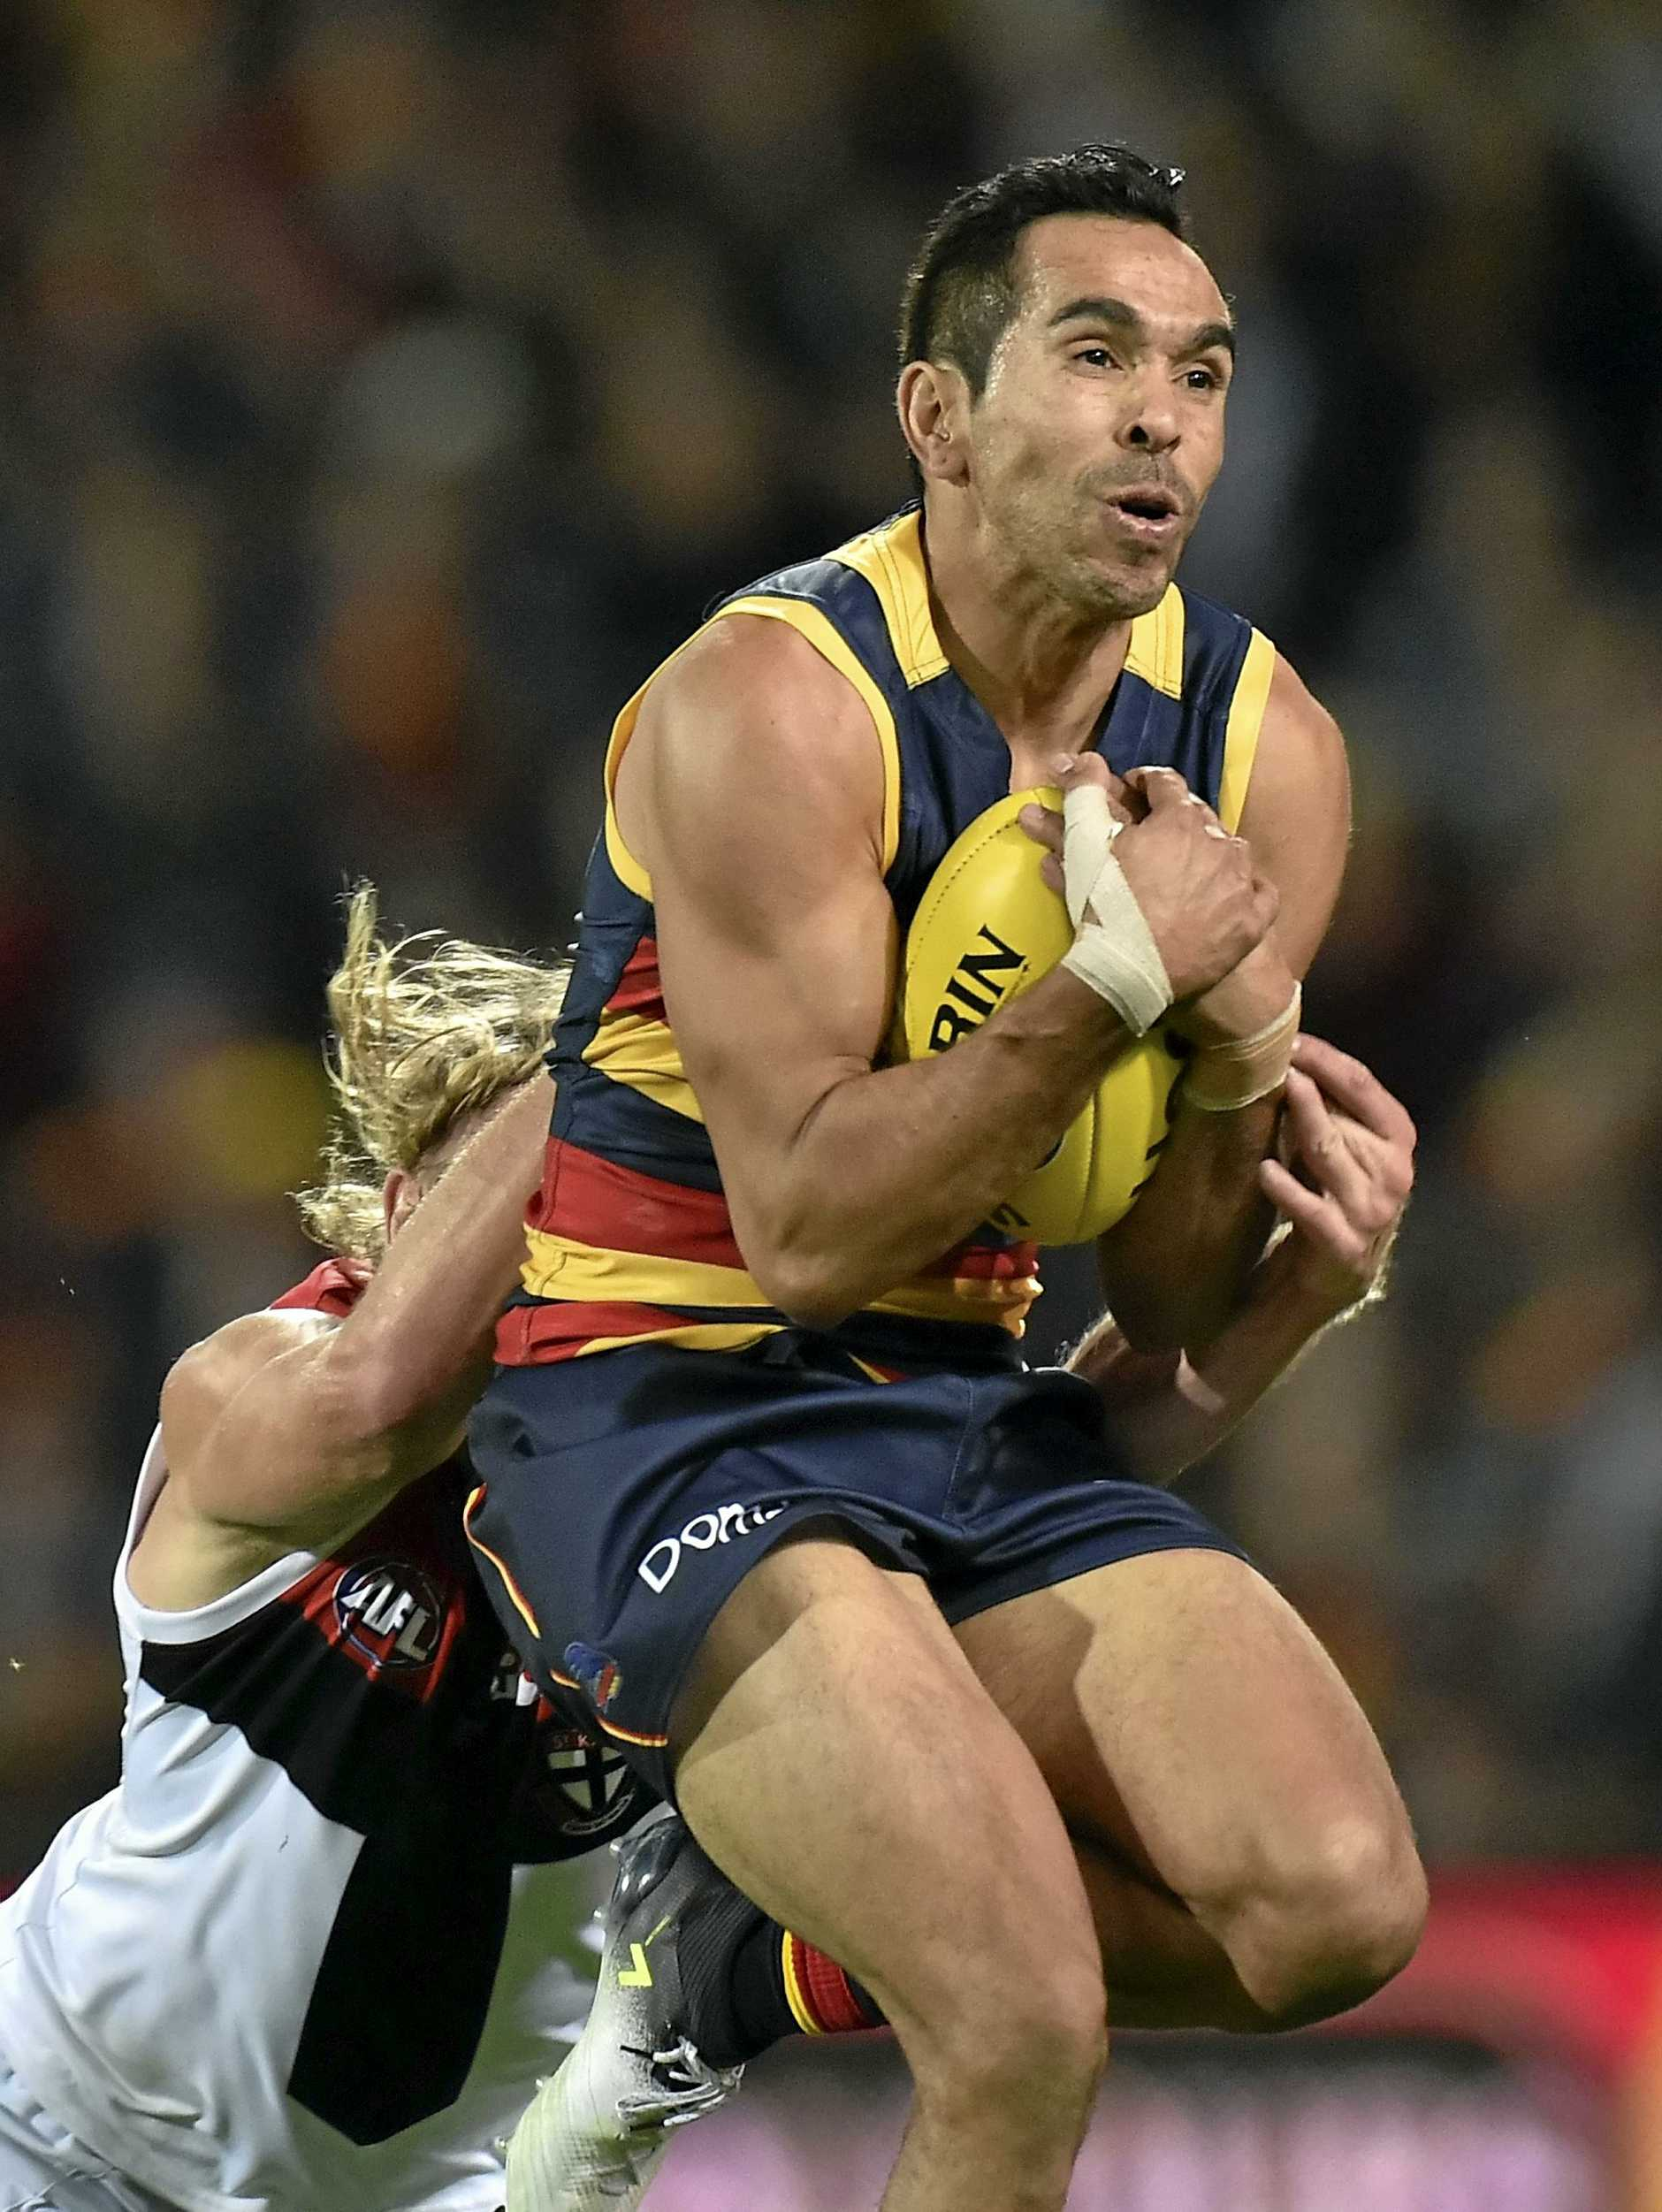 Eddie Betts of the Crows during the Round 12 AFL match between the Adelaide Crows and the St Kilda Saints at Adelaide Oval in Adelaide, Friday, June 9, 2017. (AAP Image/David Mariuz) NO ARCHIVING, EDITORIAL USE ONLY